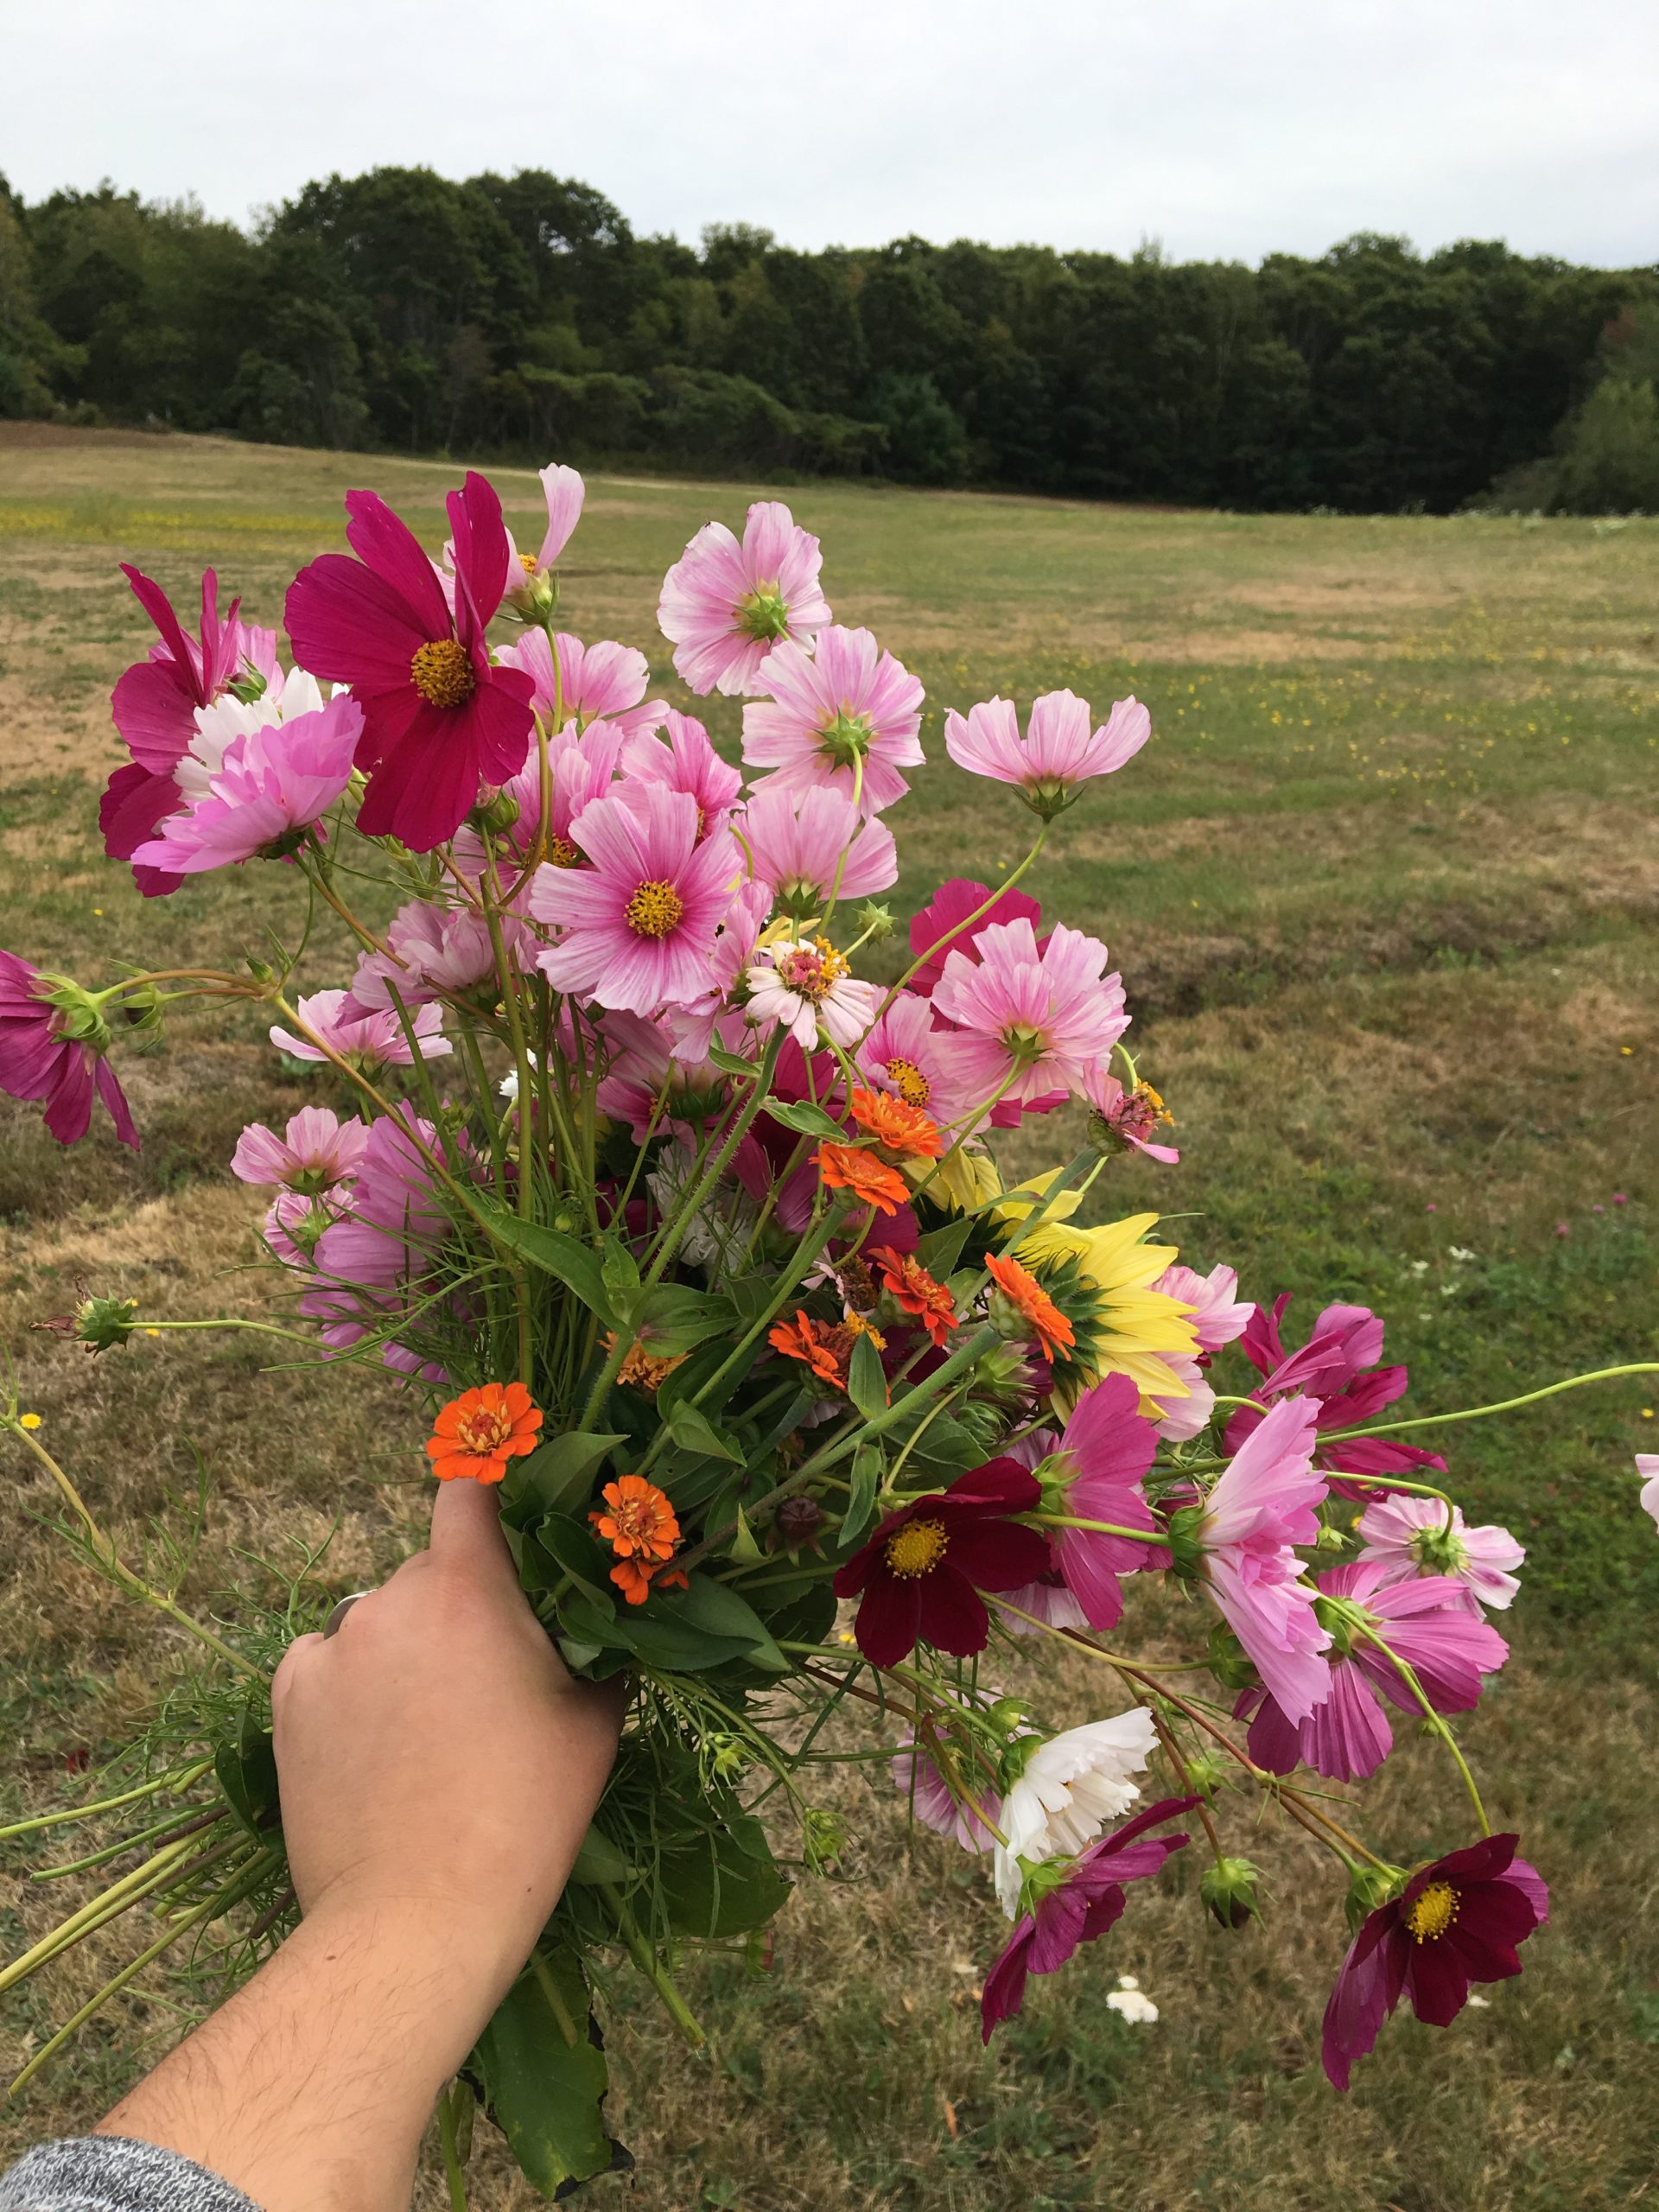 A handful of cut cosmos flowers